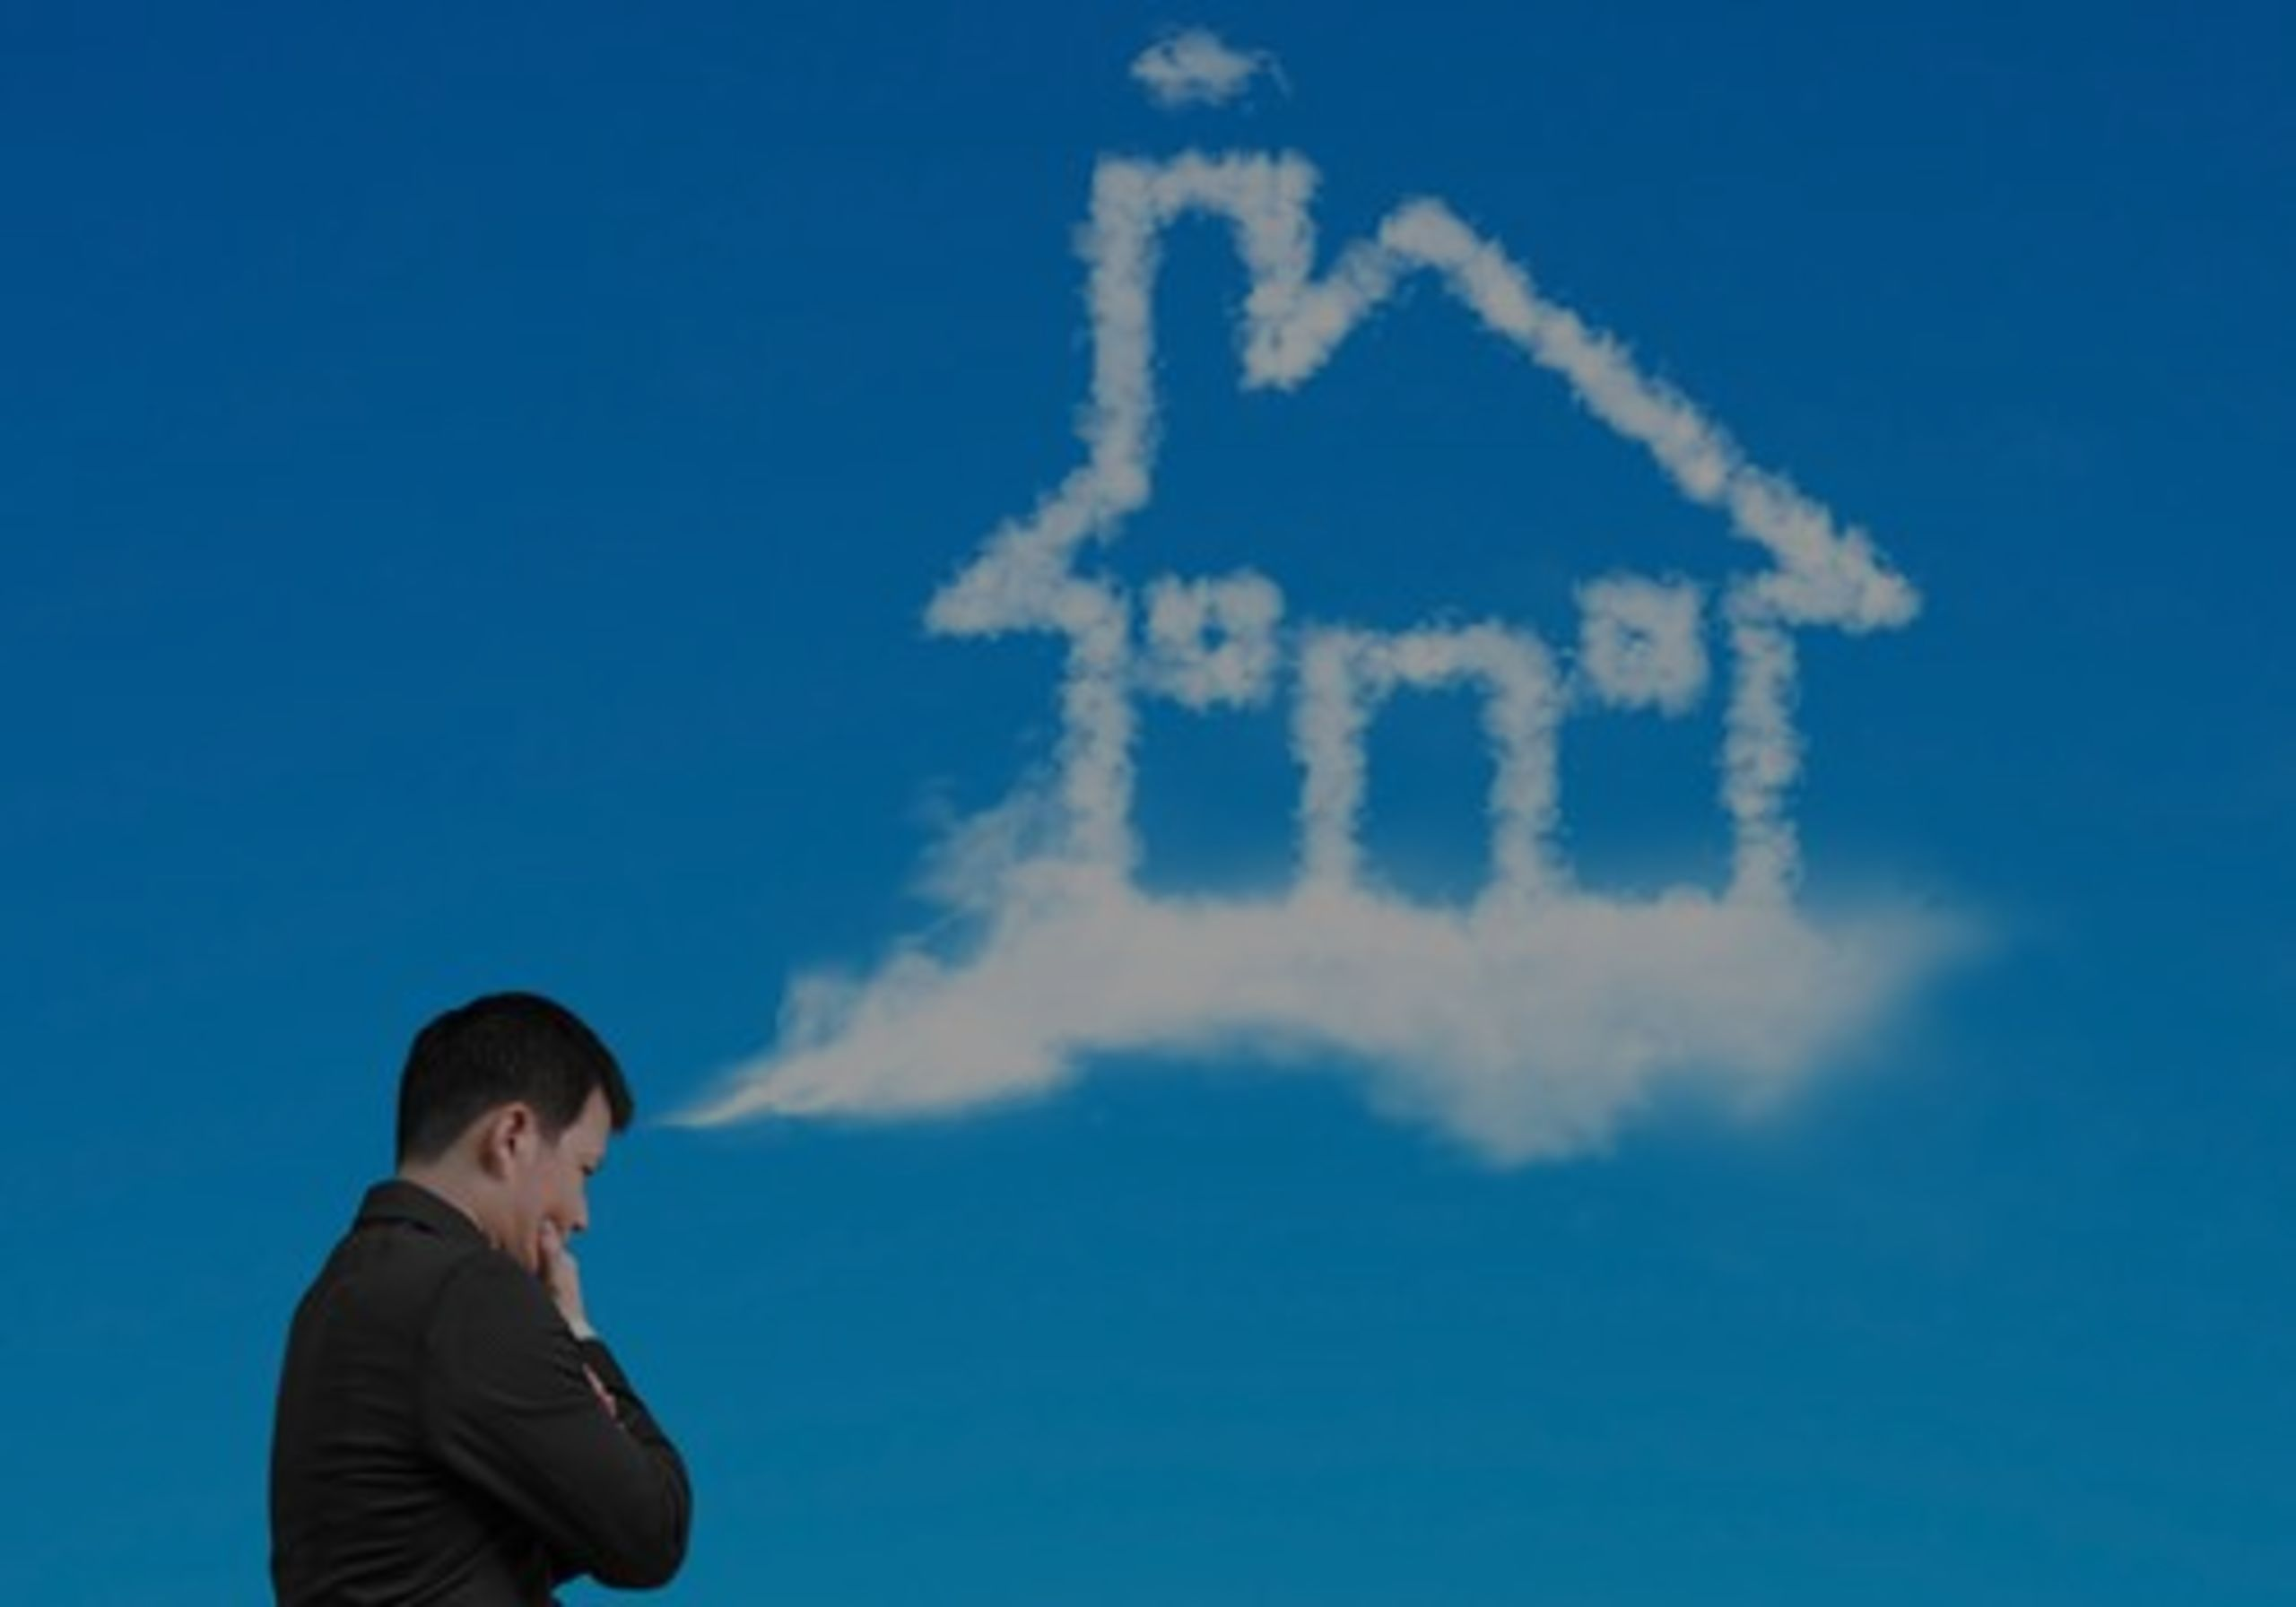 Should I buy a house now or wait? Here are 5 things to consider before buying a home in 2021